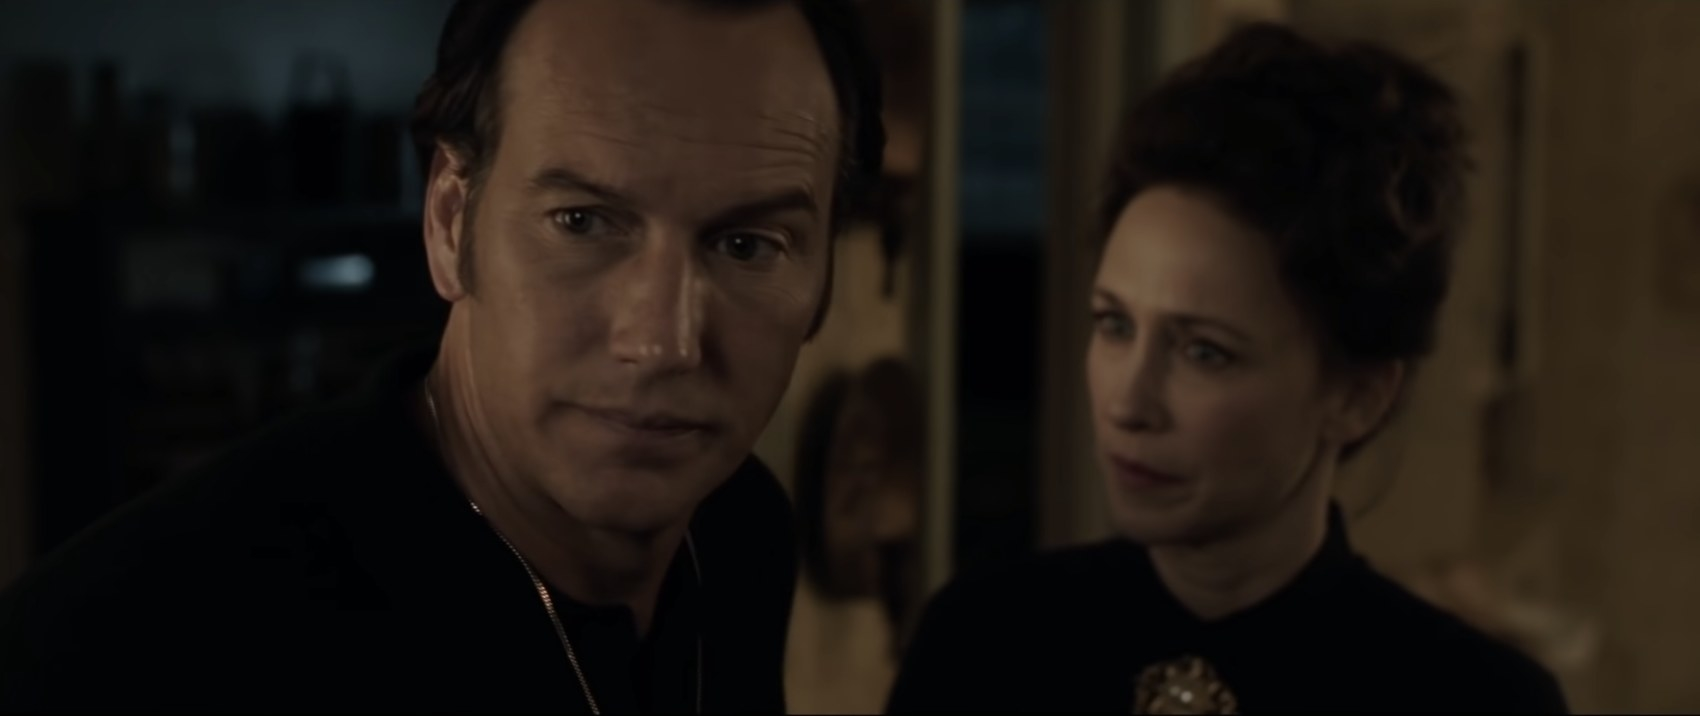 Ed and Lorraine Warren in The Conjuring 3